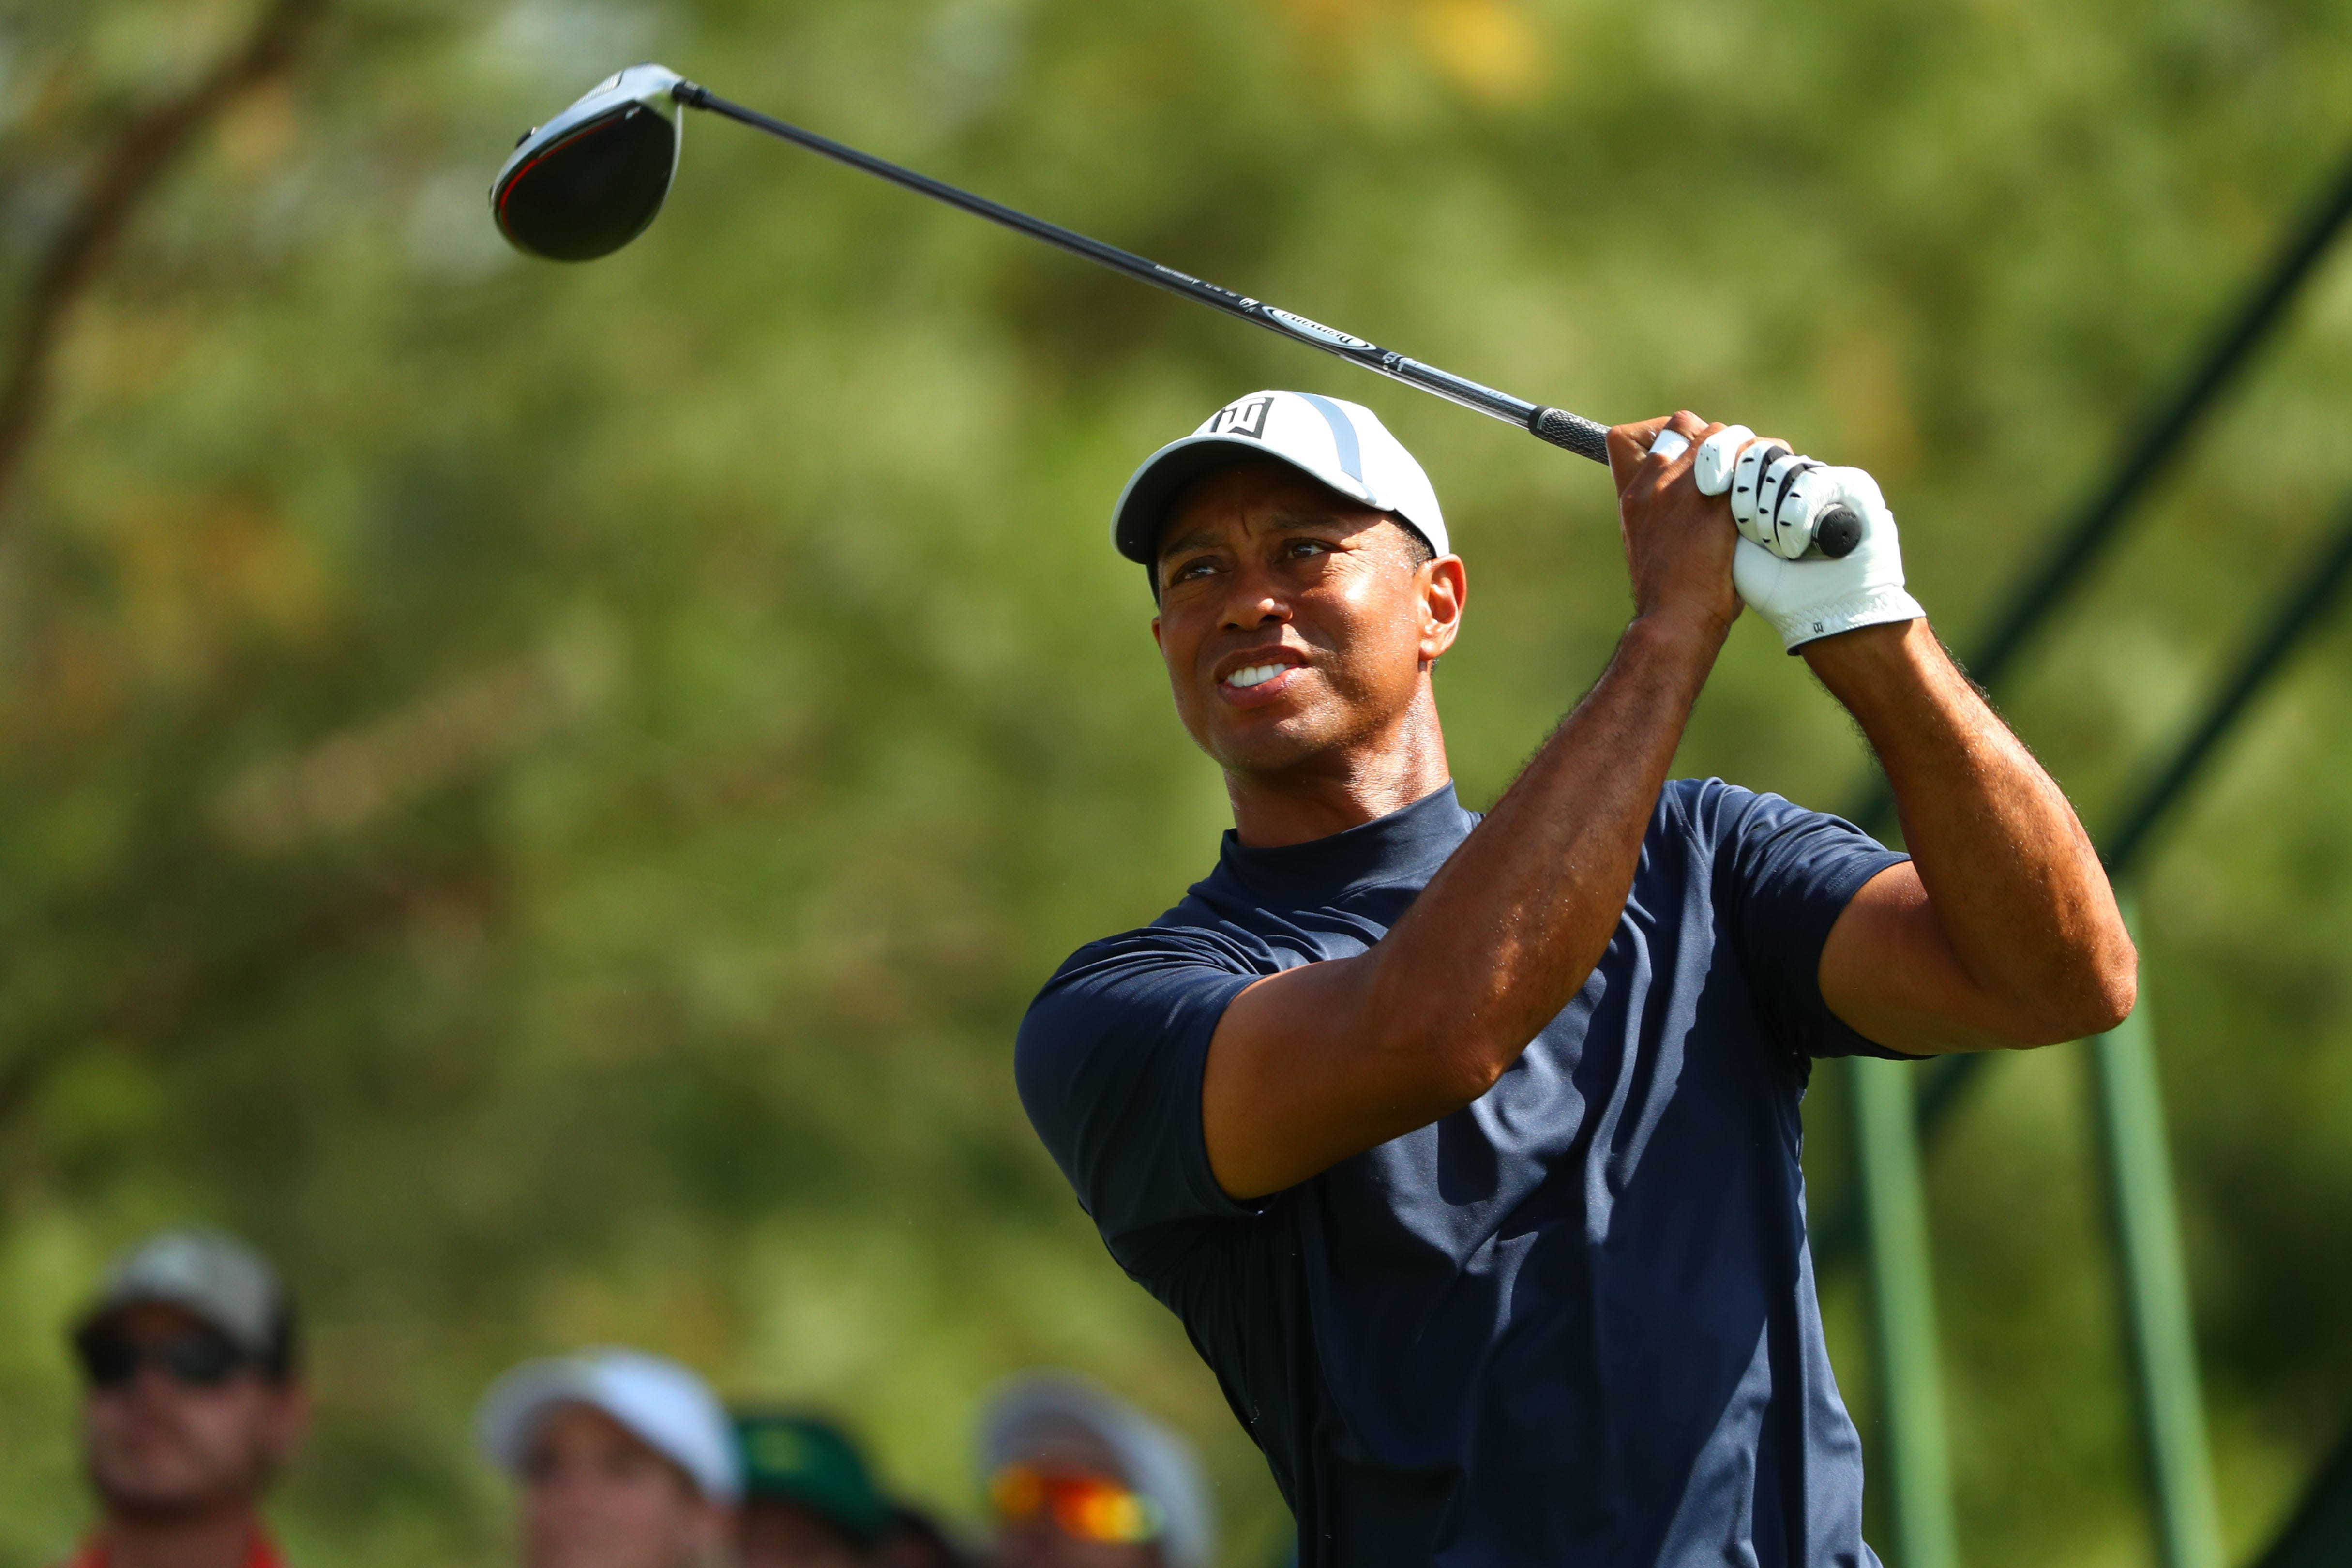 Tiger Woods, hitting his tee shot on the 18th hole, posted a 2-under 70 Thursday in the first round of the Masters.